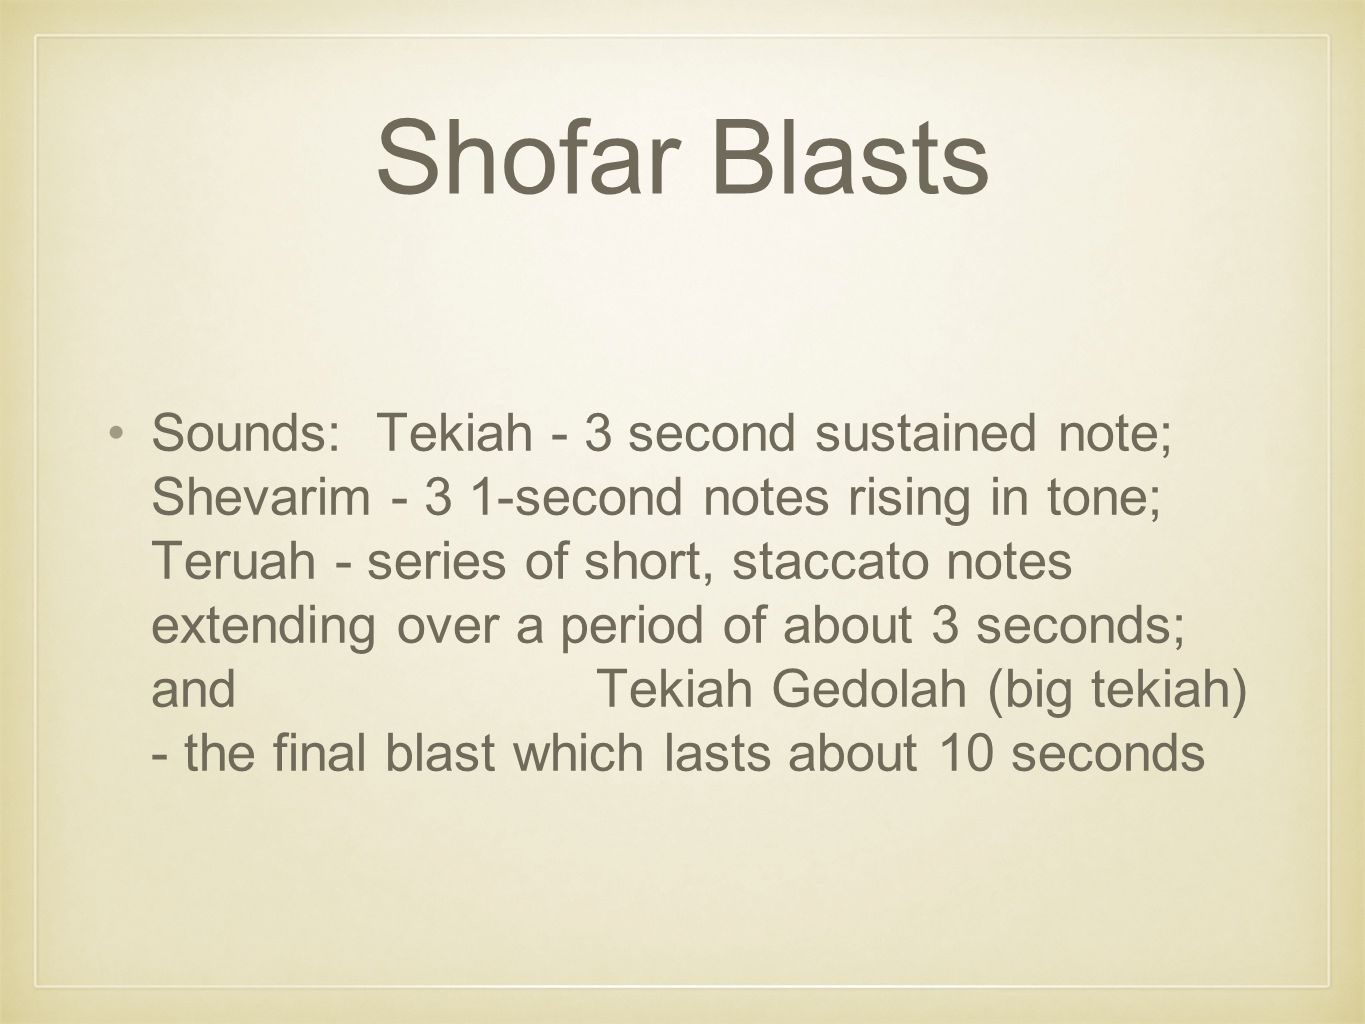 Shofar Blasts Sounds: Tekiah - 3 second sustained note; Shevarim - 3 1-second notes rising in tone; Teruah - series of short, staccato notes extending over a period of about 3 seconds; and Tekiah Gedolah (big tekiah) - the final blast which lasts about 10 seconds